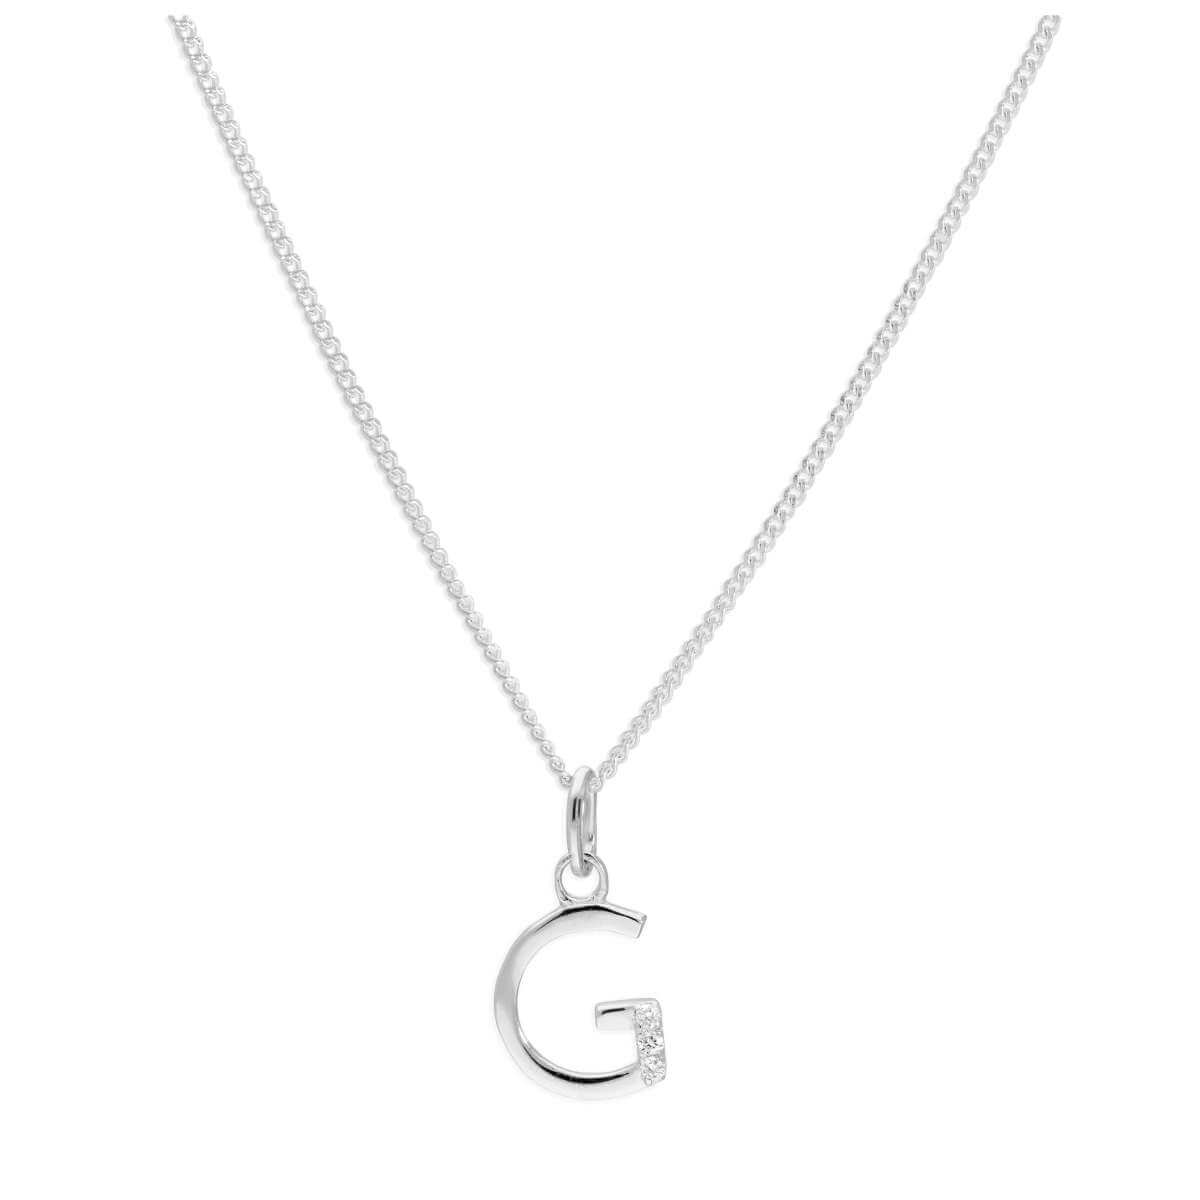 Sterling Silver 3 Stone Geniune Diamond 0.012ct Letter G Necklace Pendant 14 - 32 Inches